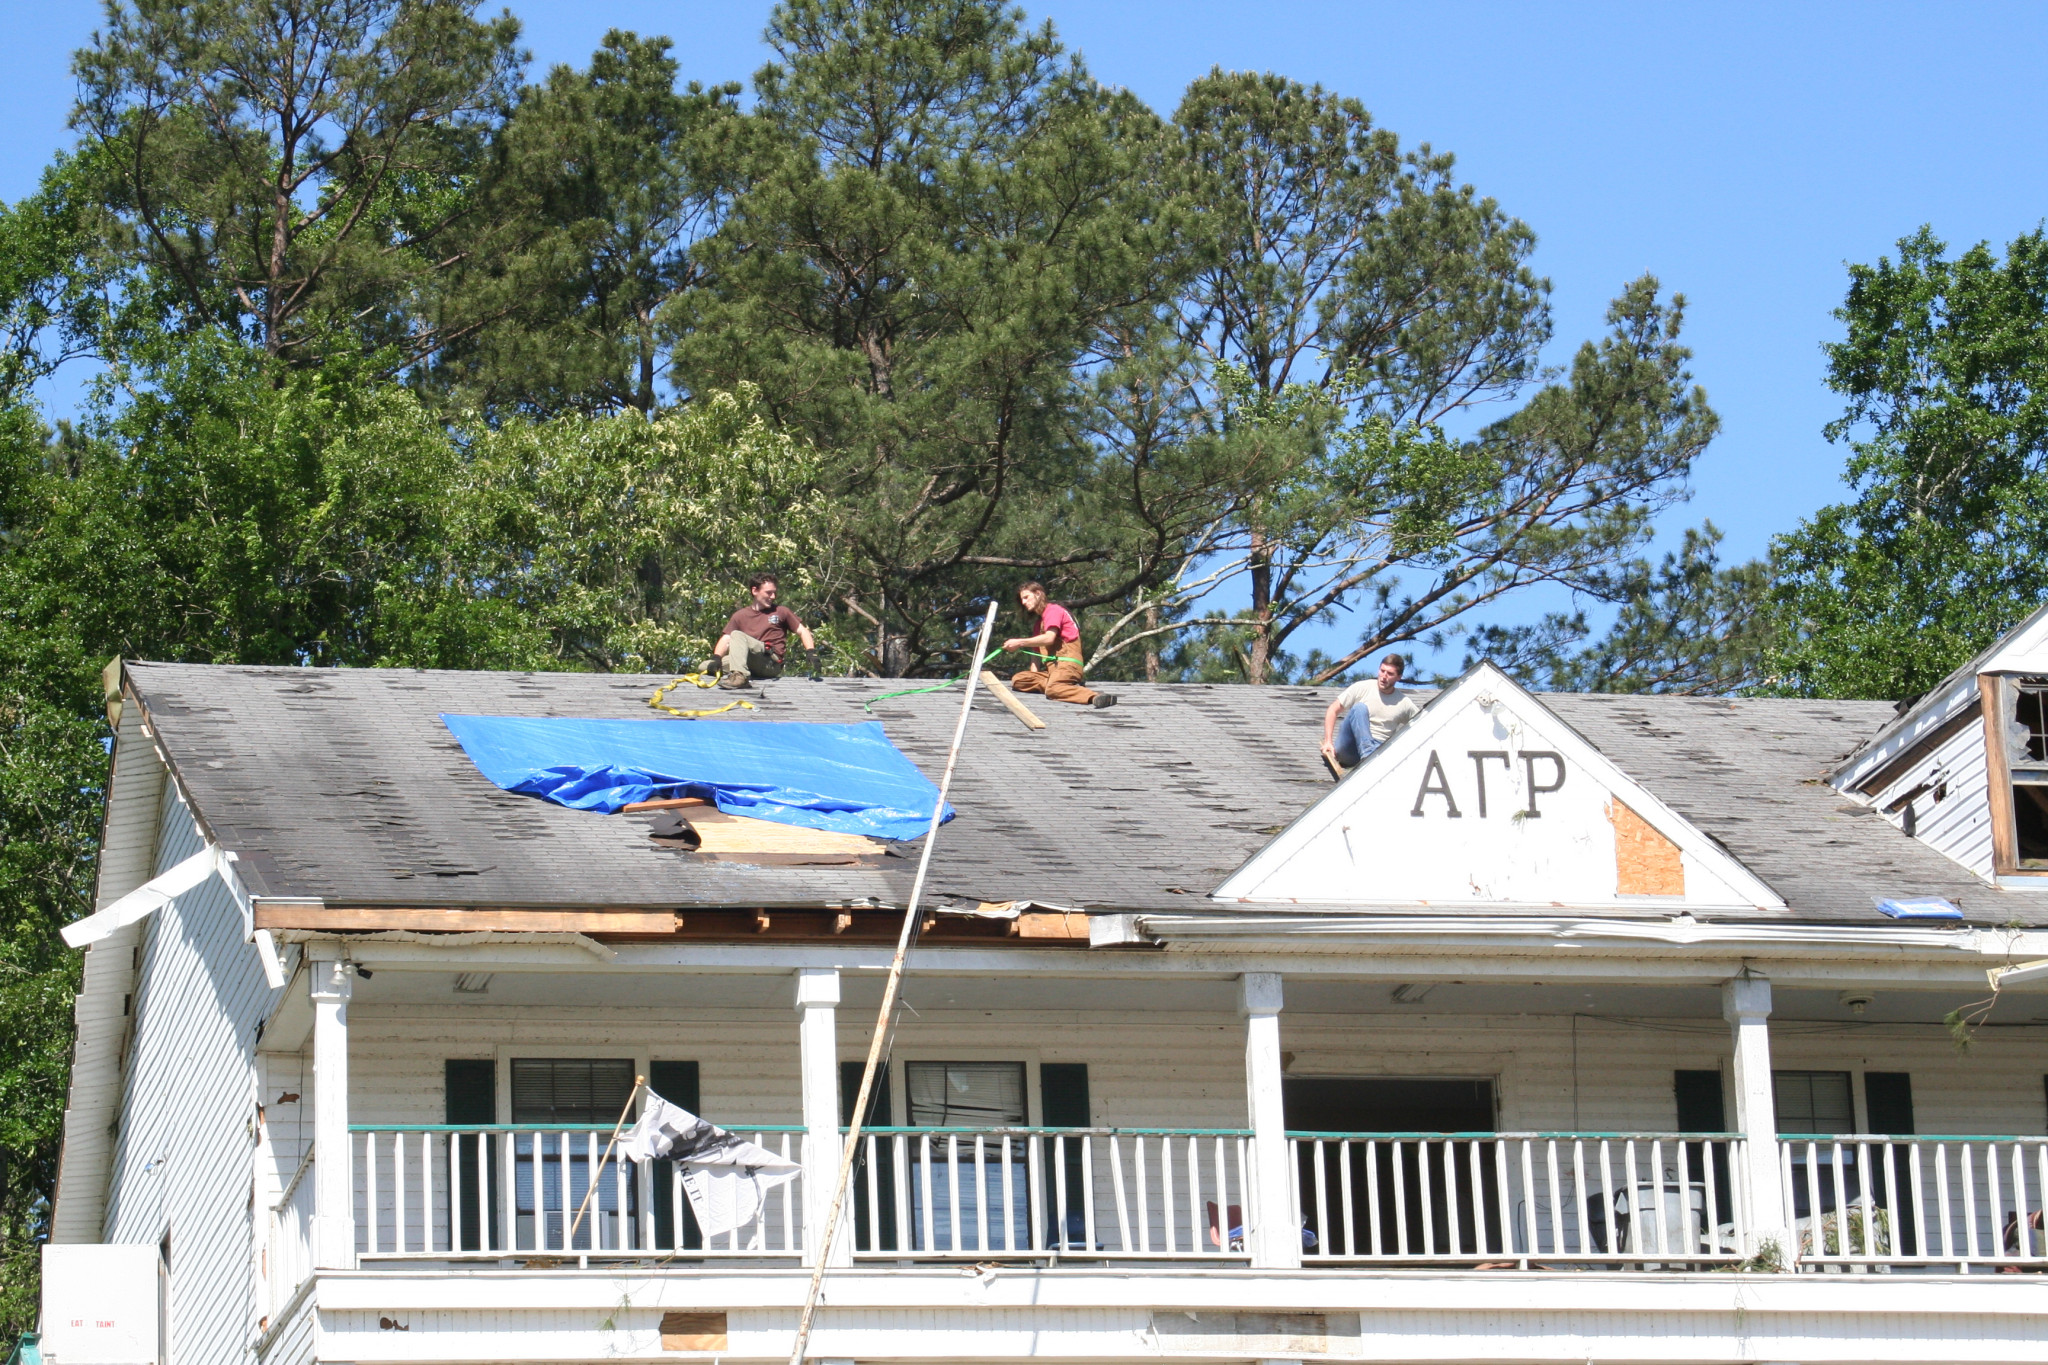 Alpha Gamma Rho fraternity house — April 26